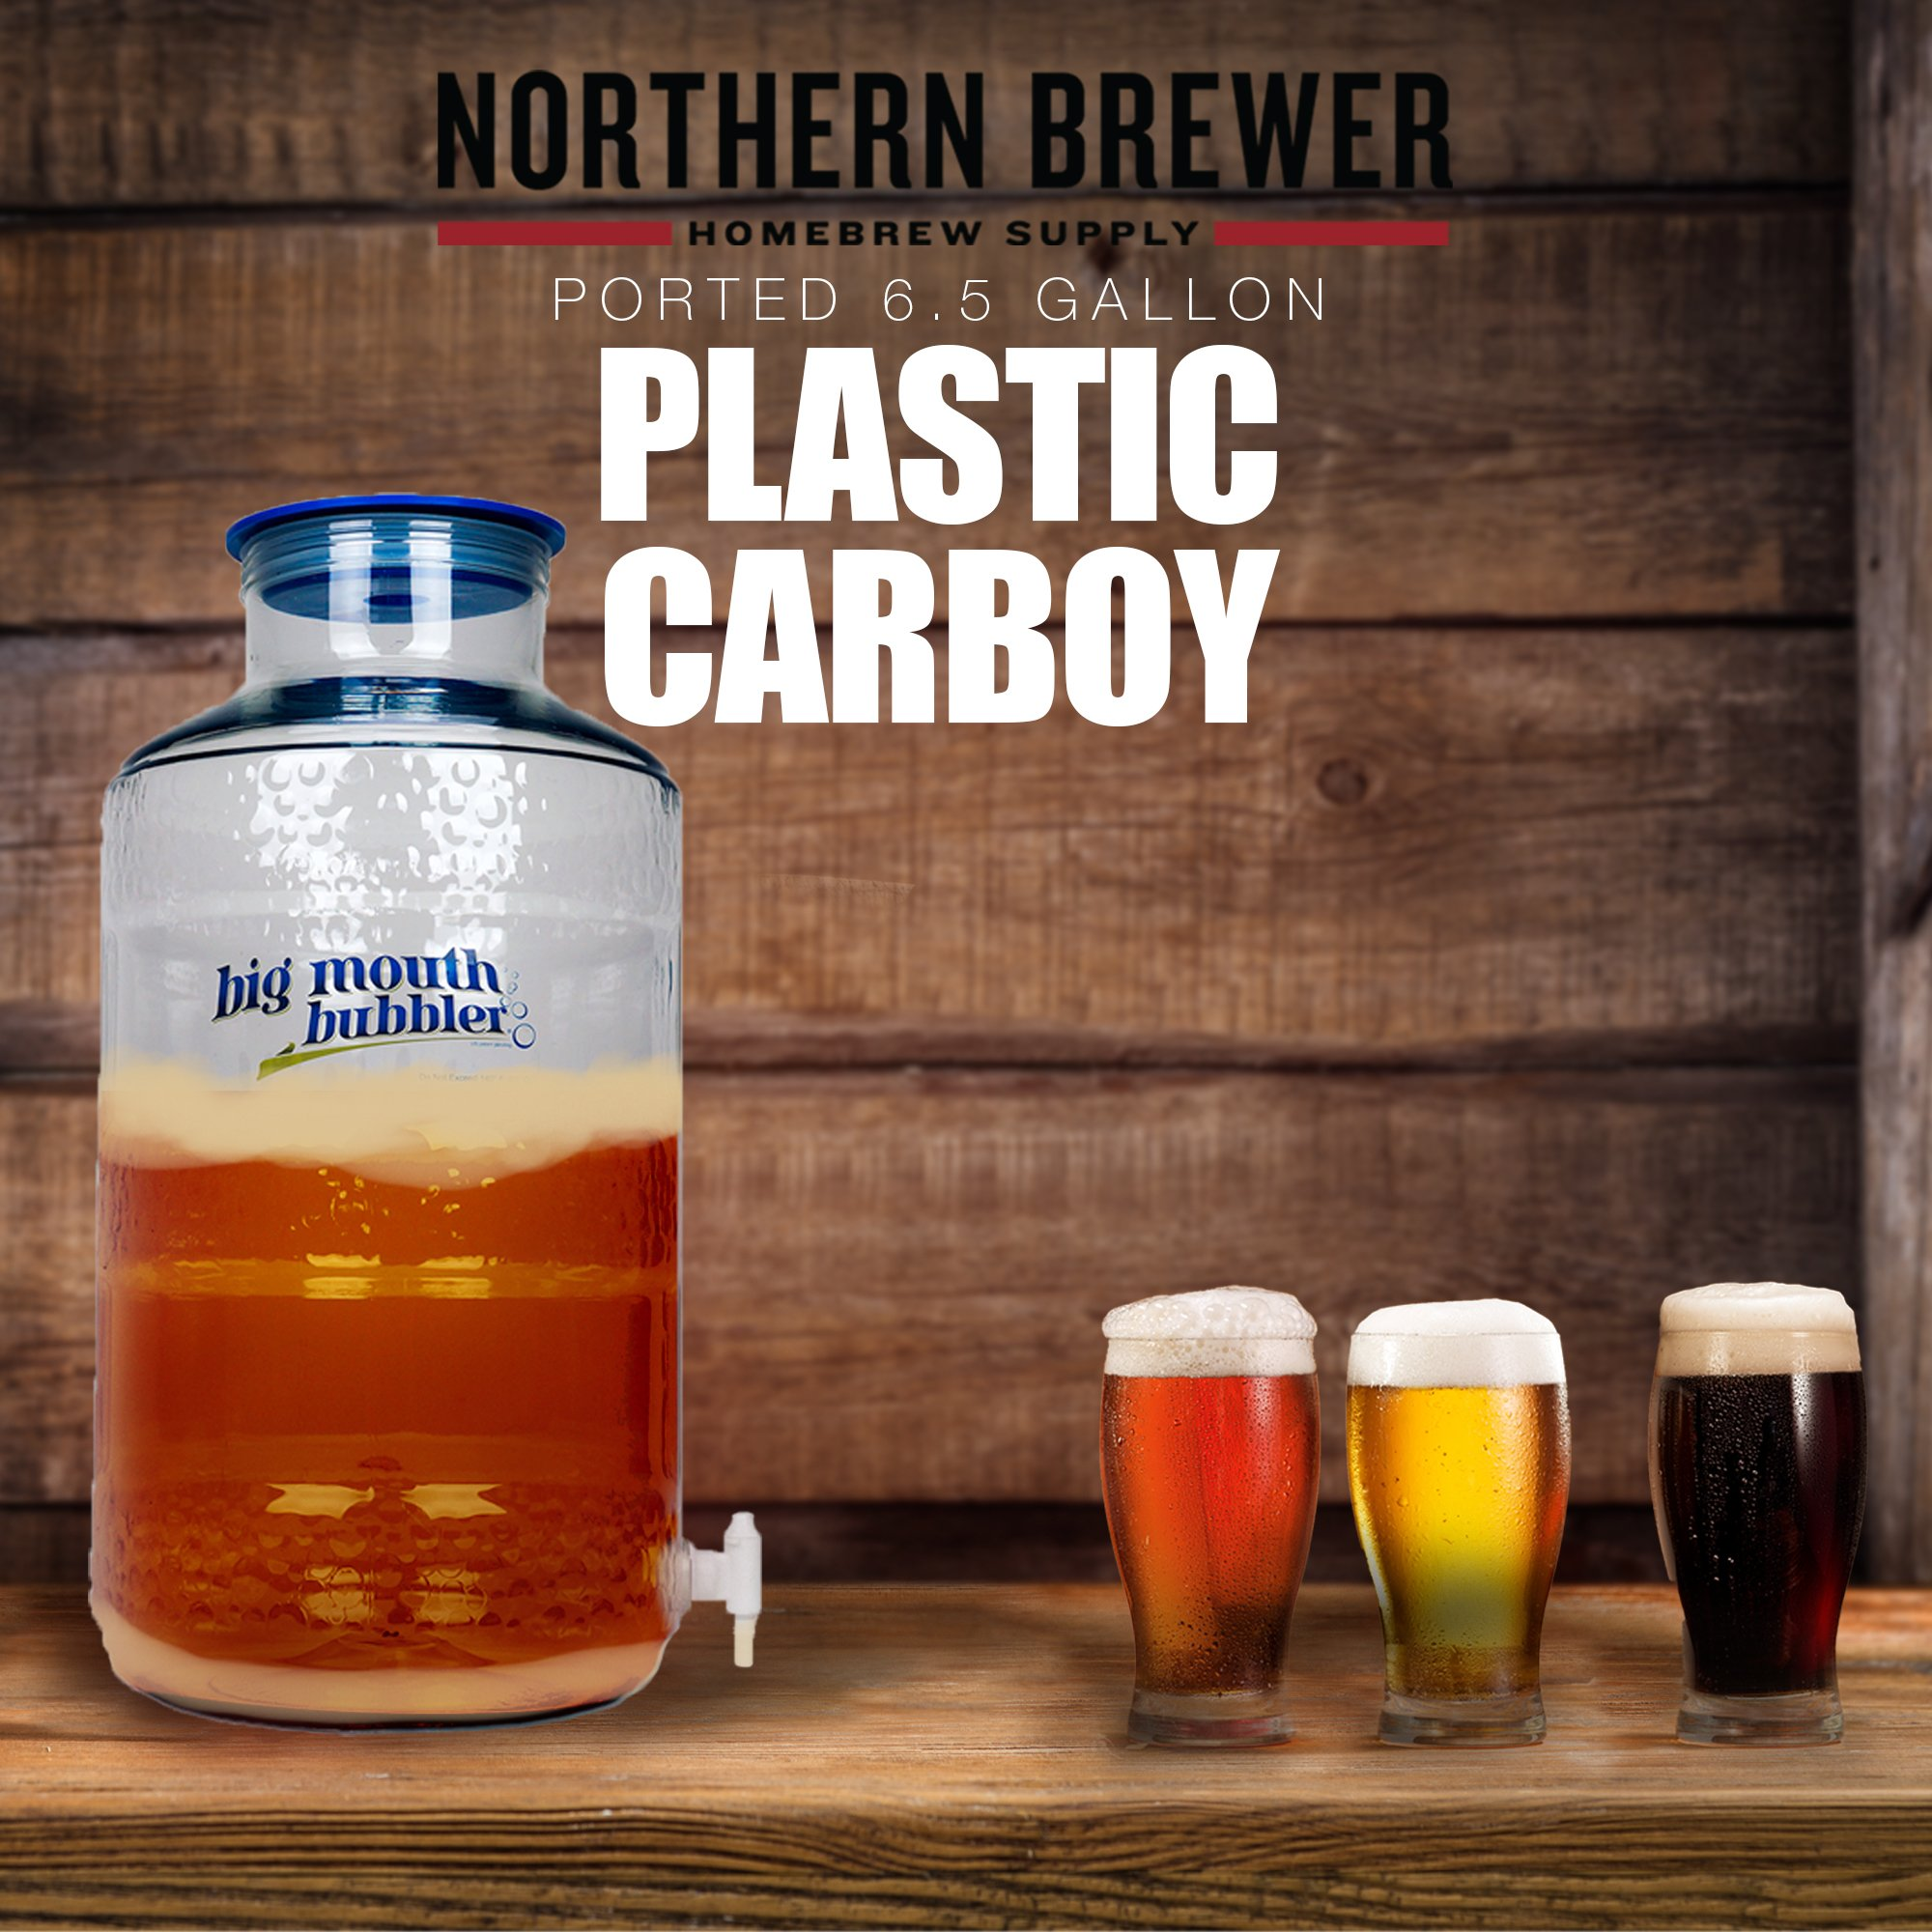 Northern Brewer - Big Mouth Bubbler PET Plastic Carboy Fermentor With Wide Mouth Universal Single Port Lid And Spigot For Fermentation Of Home Brewing And Wine Making (6.5 Gallon Ported) by Northern Brewer (Image #2)